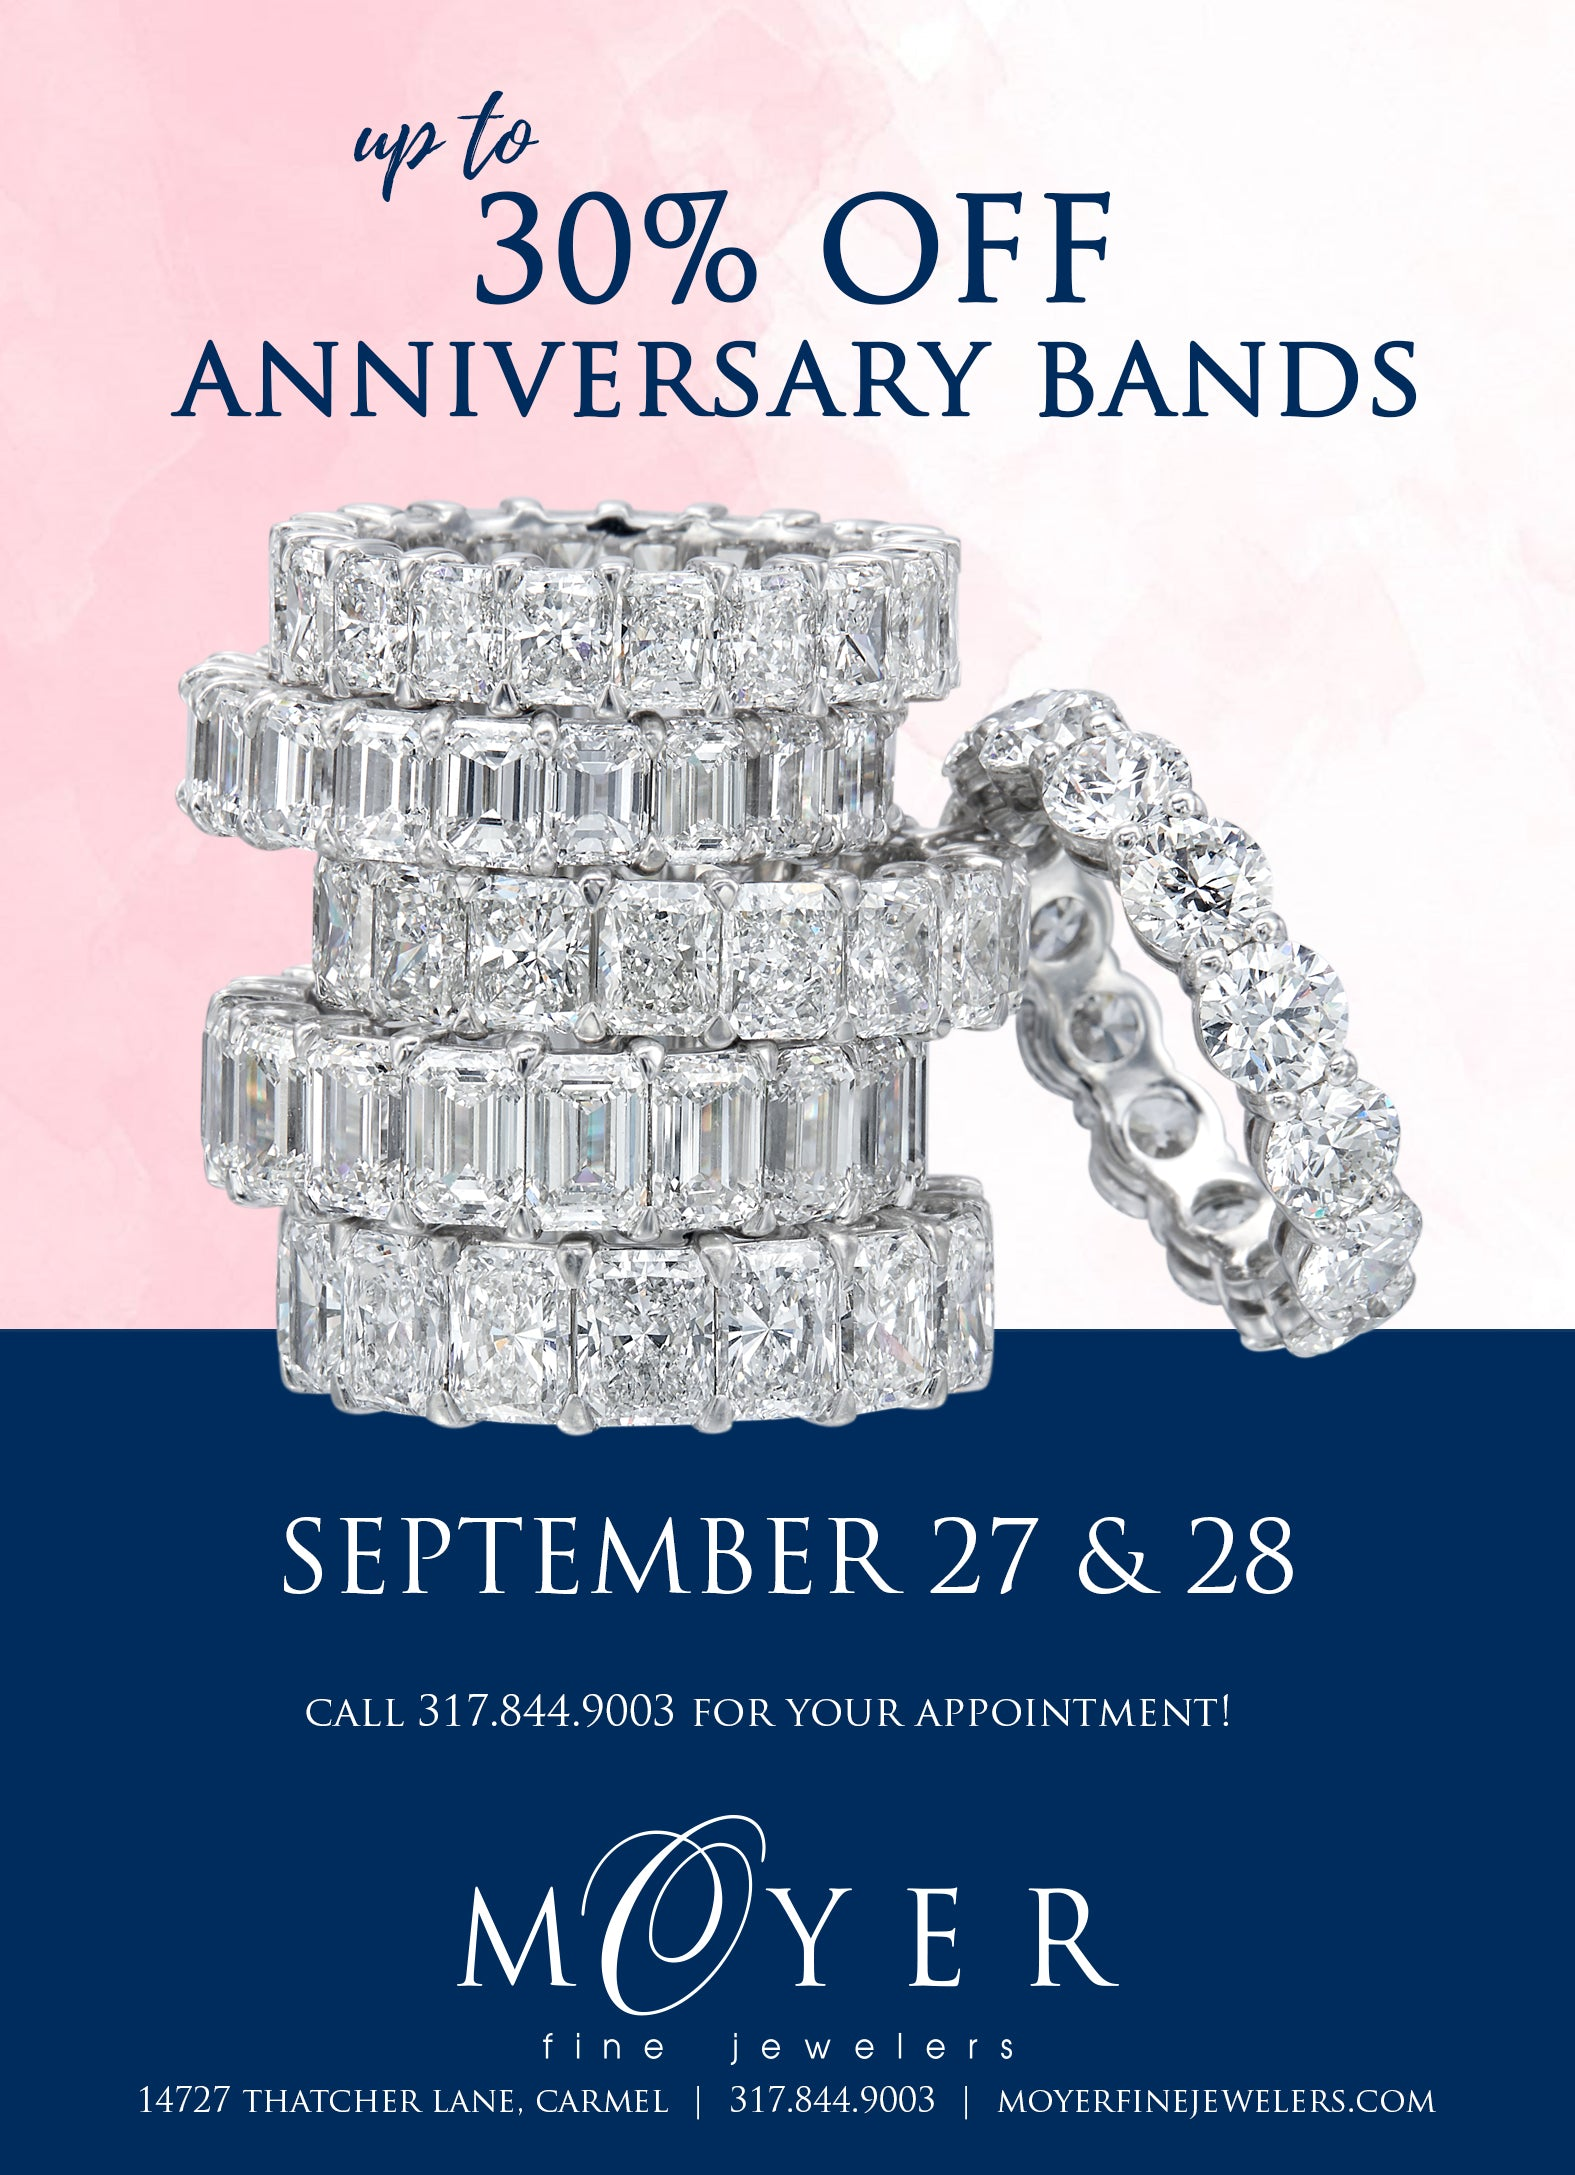 Anniversary Band Promotion